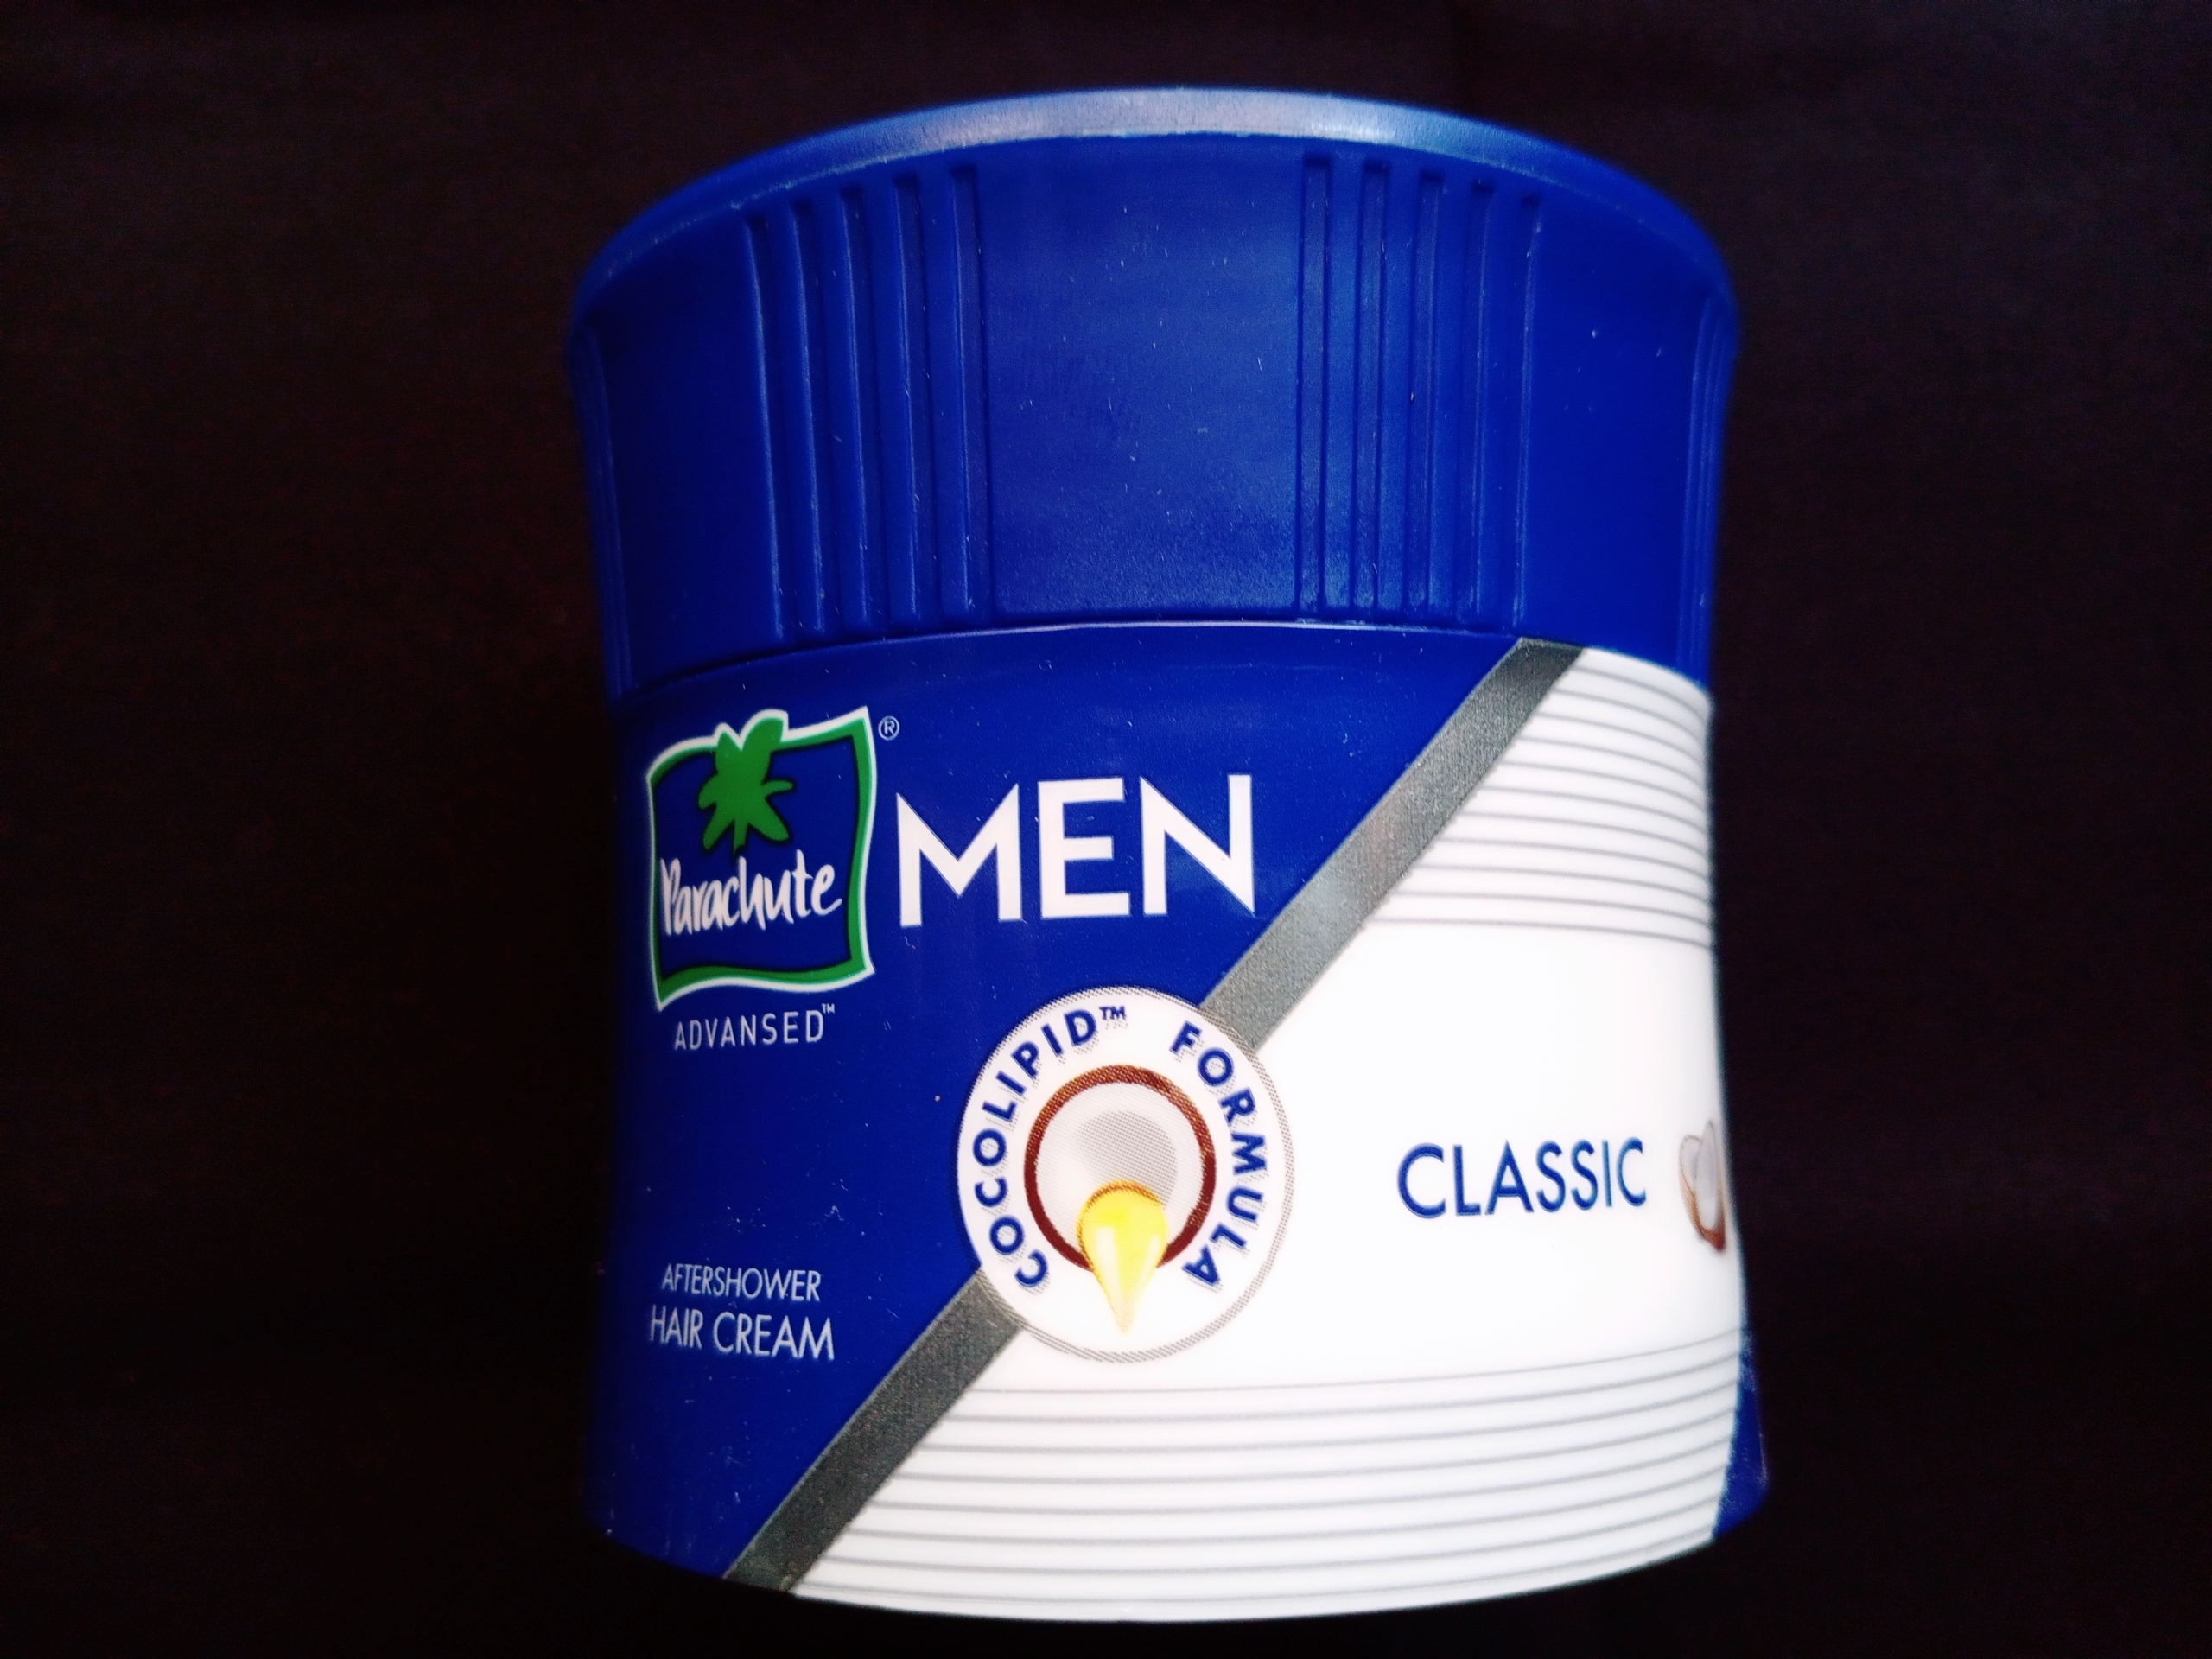 Parachute Advansed Men After Shower Hair Cream, Classic -Highly recommended proudct-By abhinav_mishra